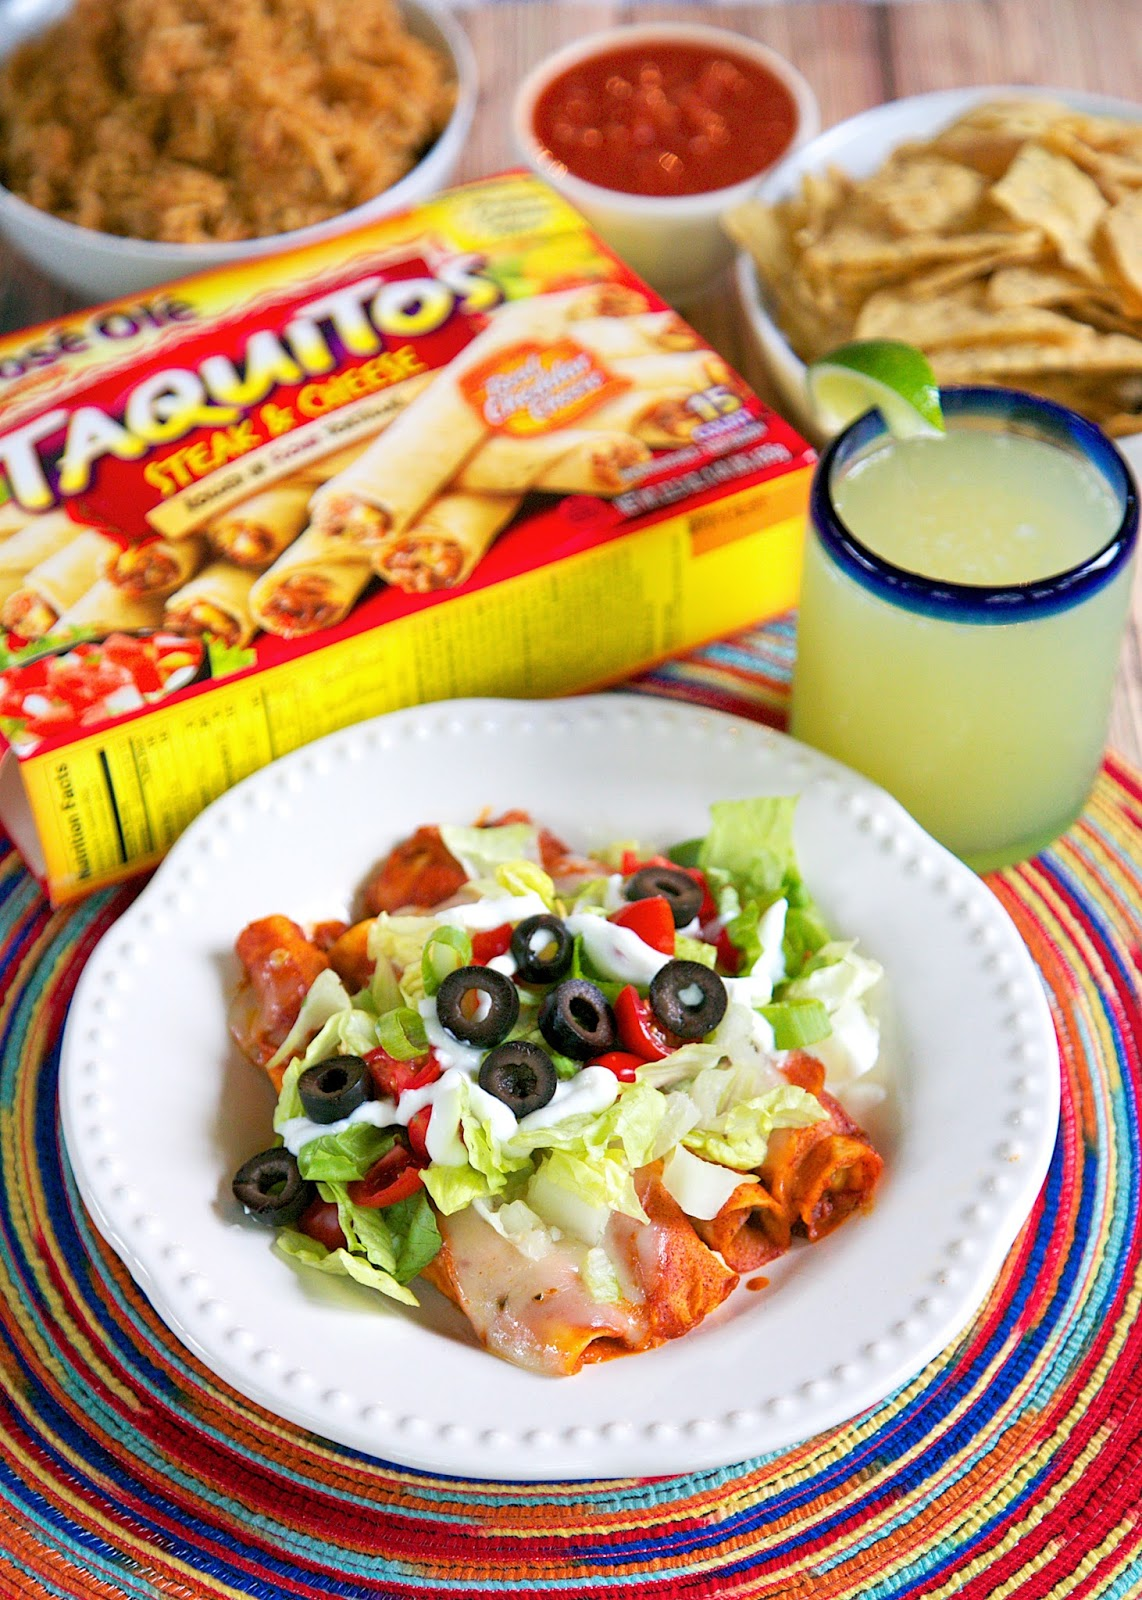 Taquito-lada Casserole Recipe - use frozen Jose Ole taquitos for a quick Mexican taquito enchilada casserole. Top with lettuce, tomatoes, olives, green onions and sour cream.